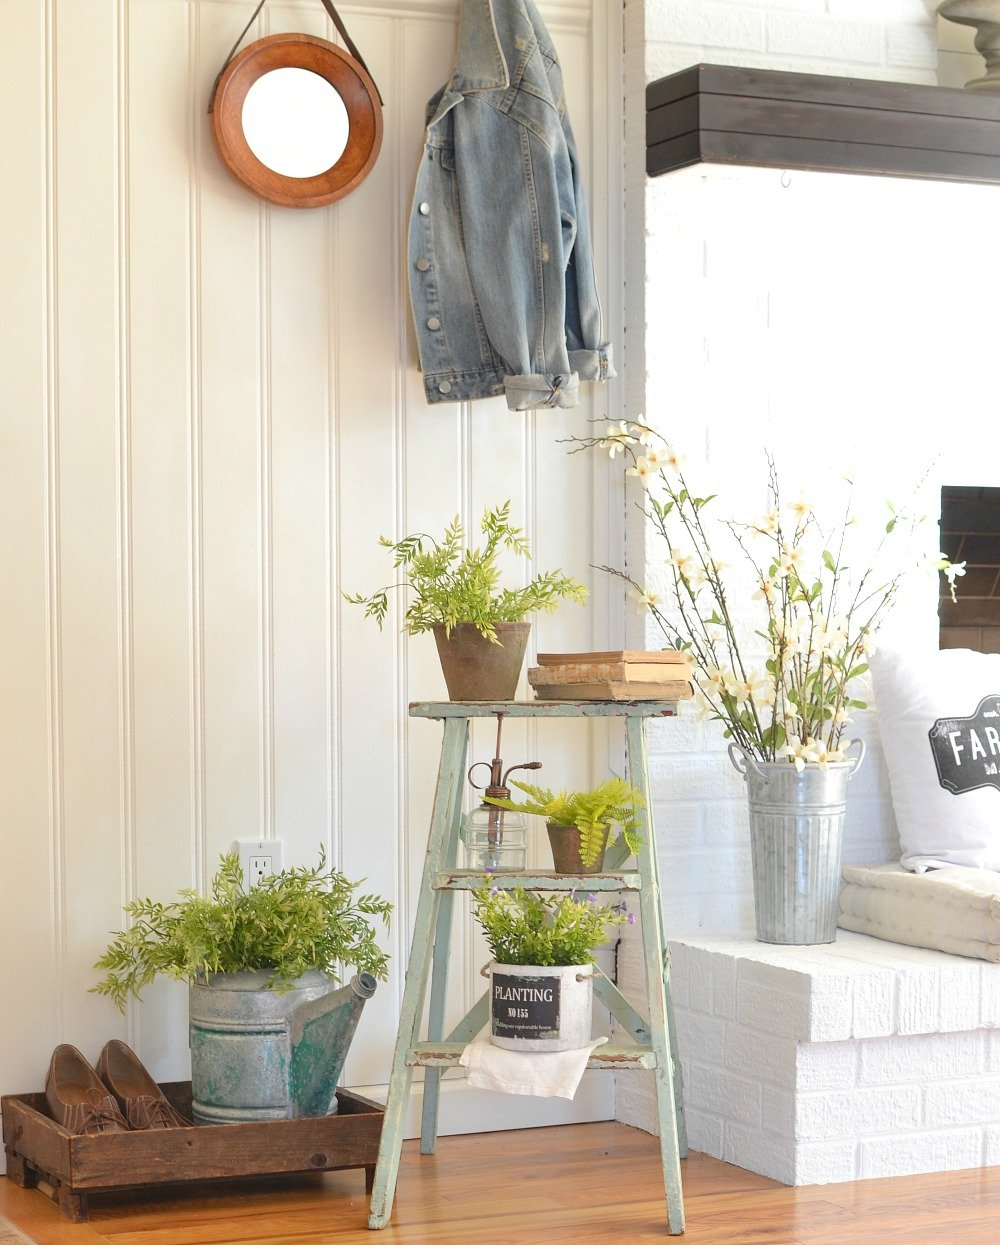 A Simple Vintage Spring Entryway. See how this farmhouse entryway is styled with a vintage ladder and touches of spring decor!